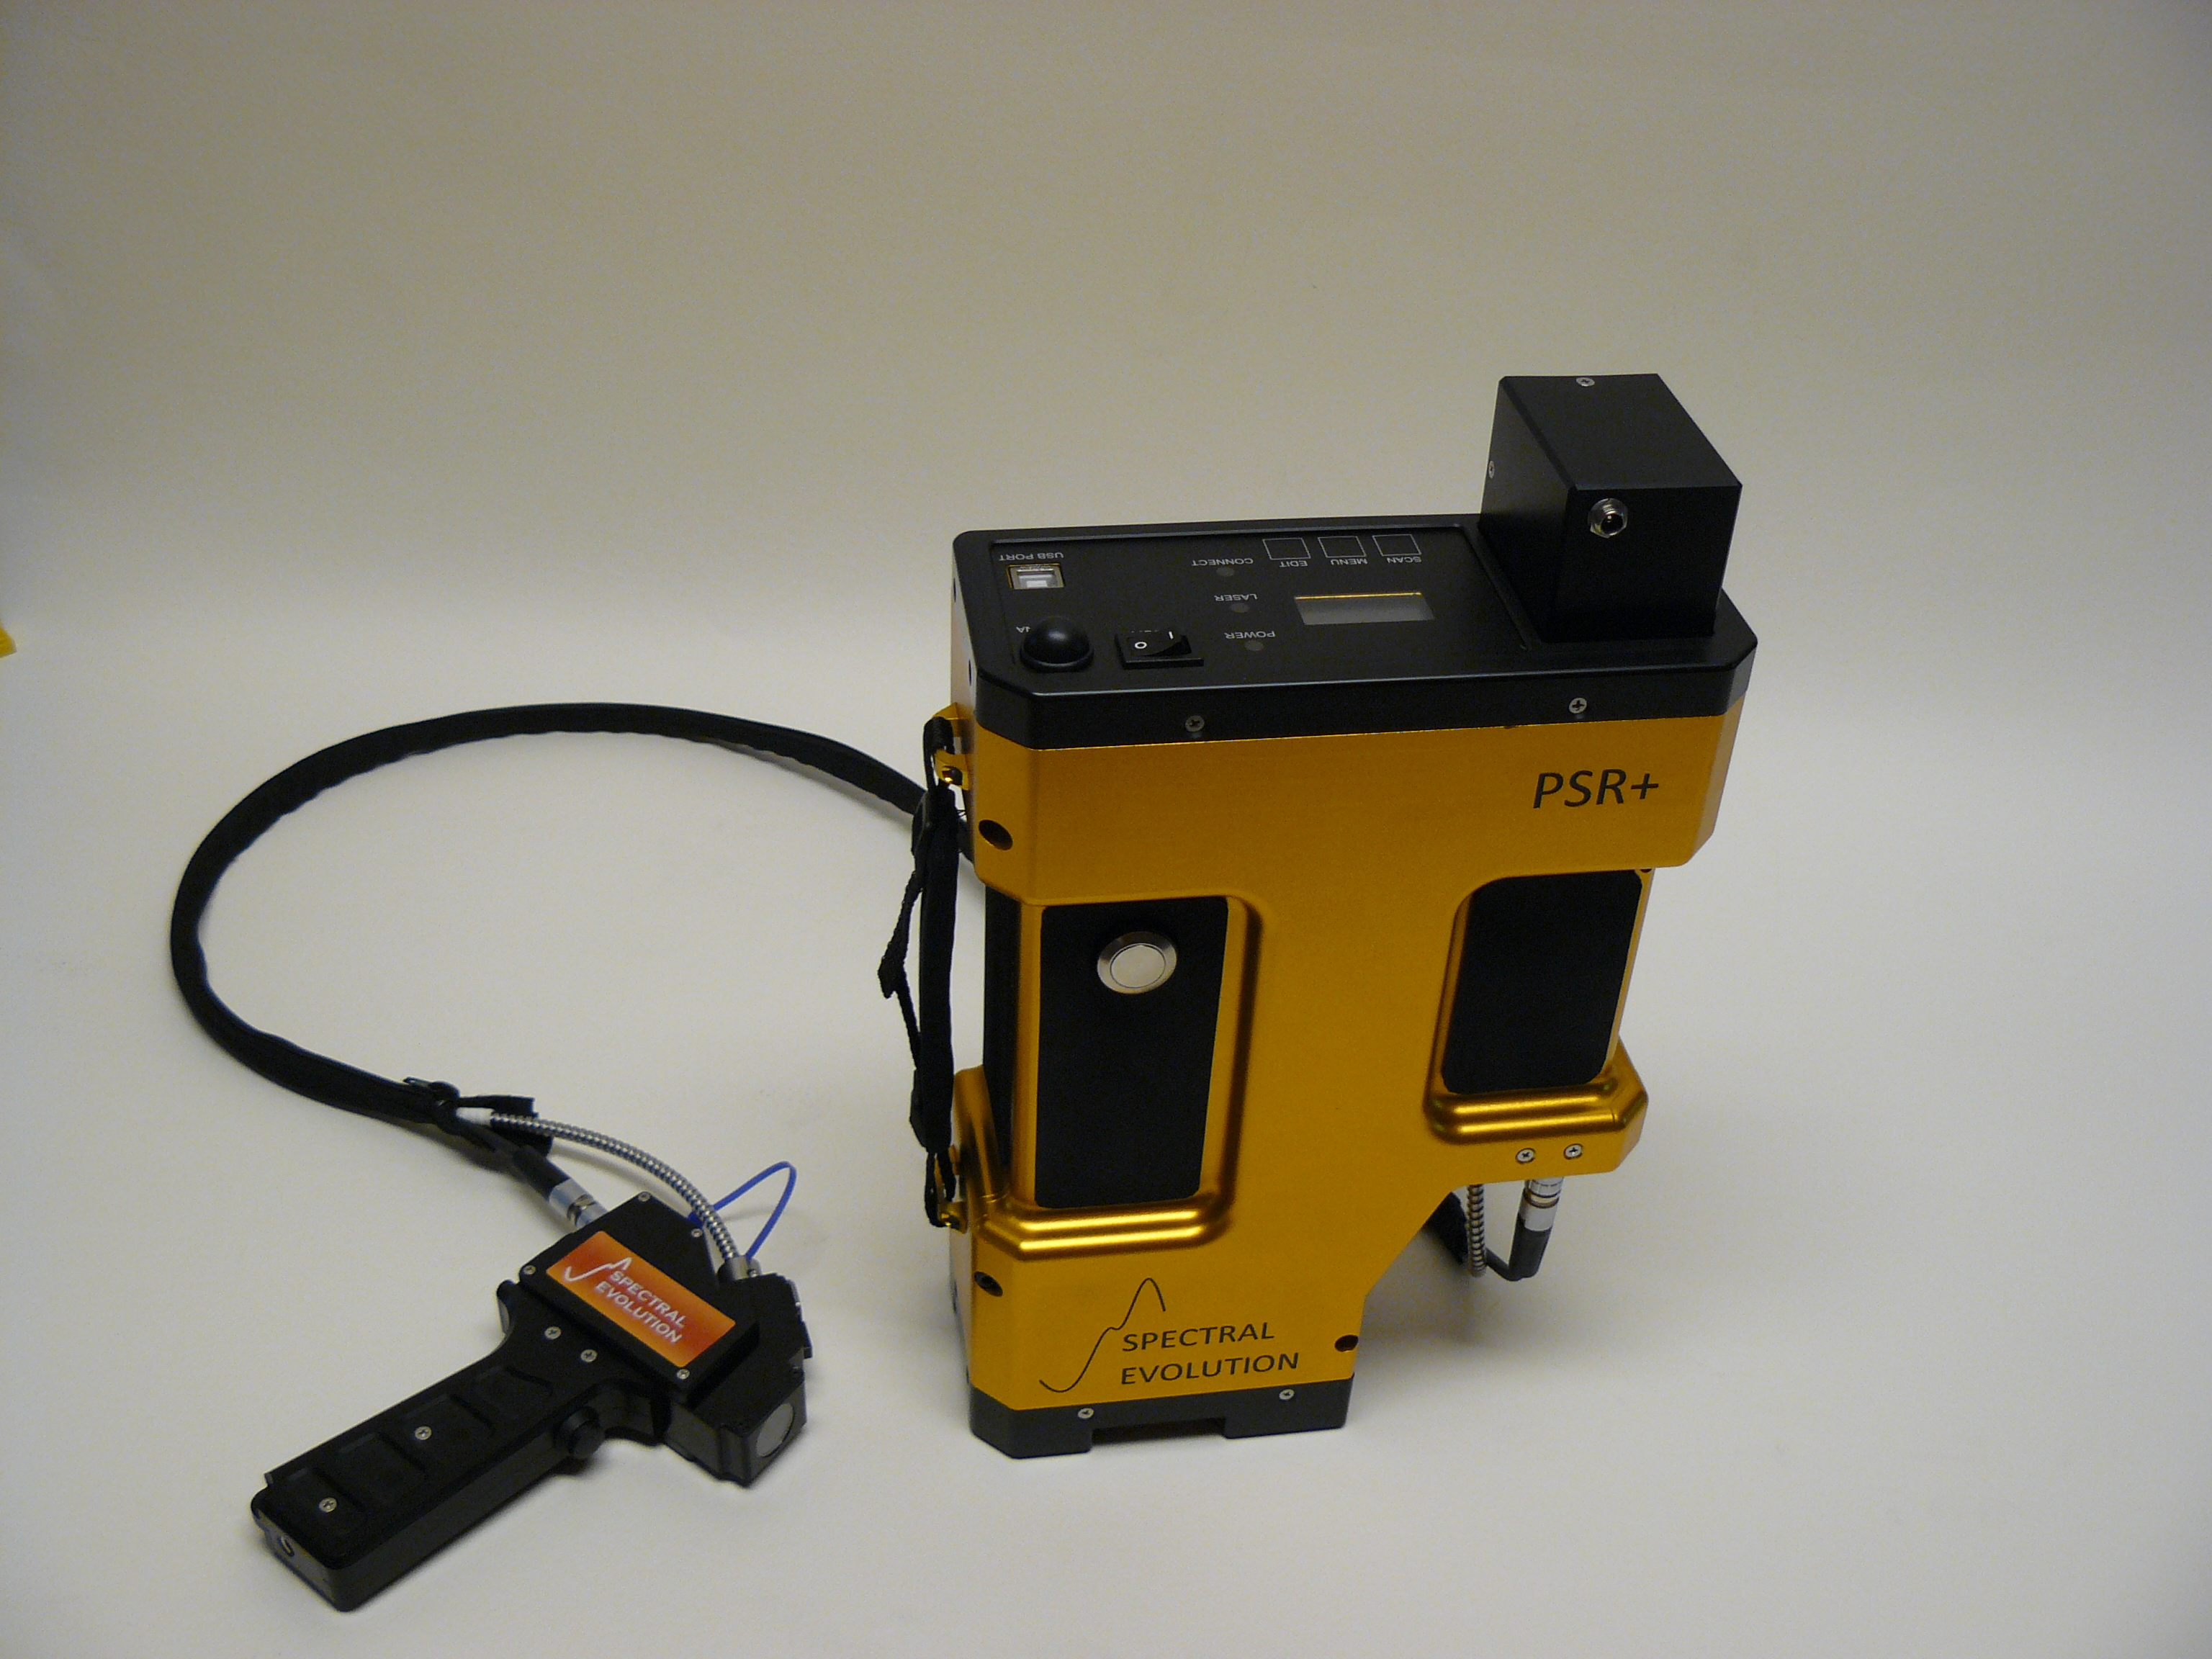 PSR+ with contact probe for soil measurements